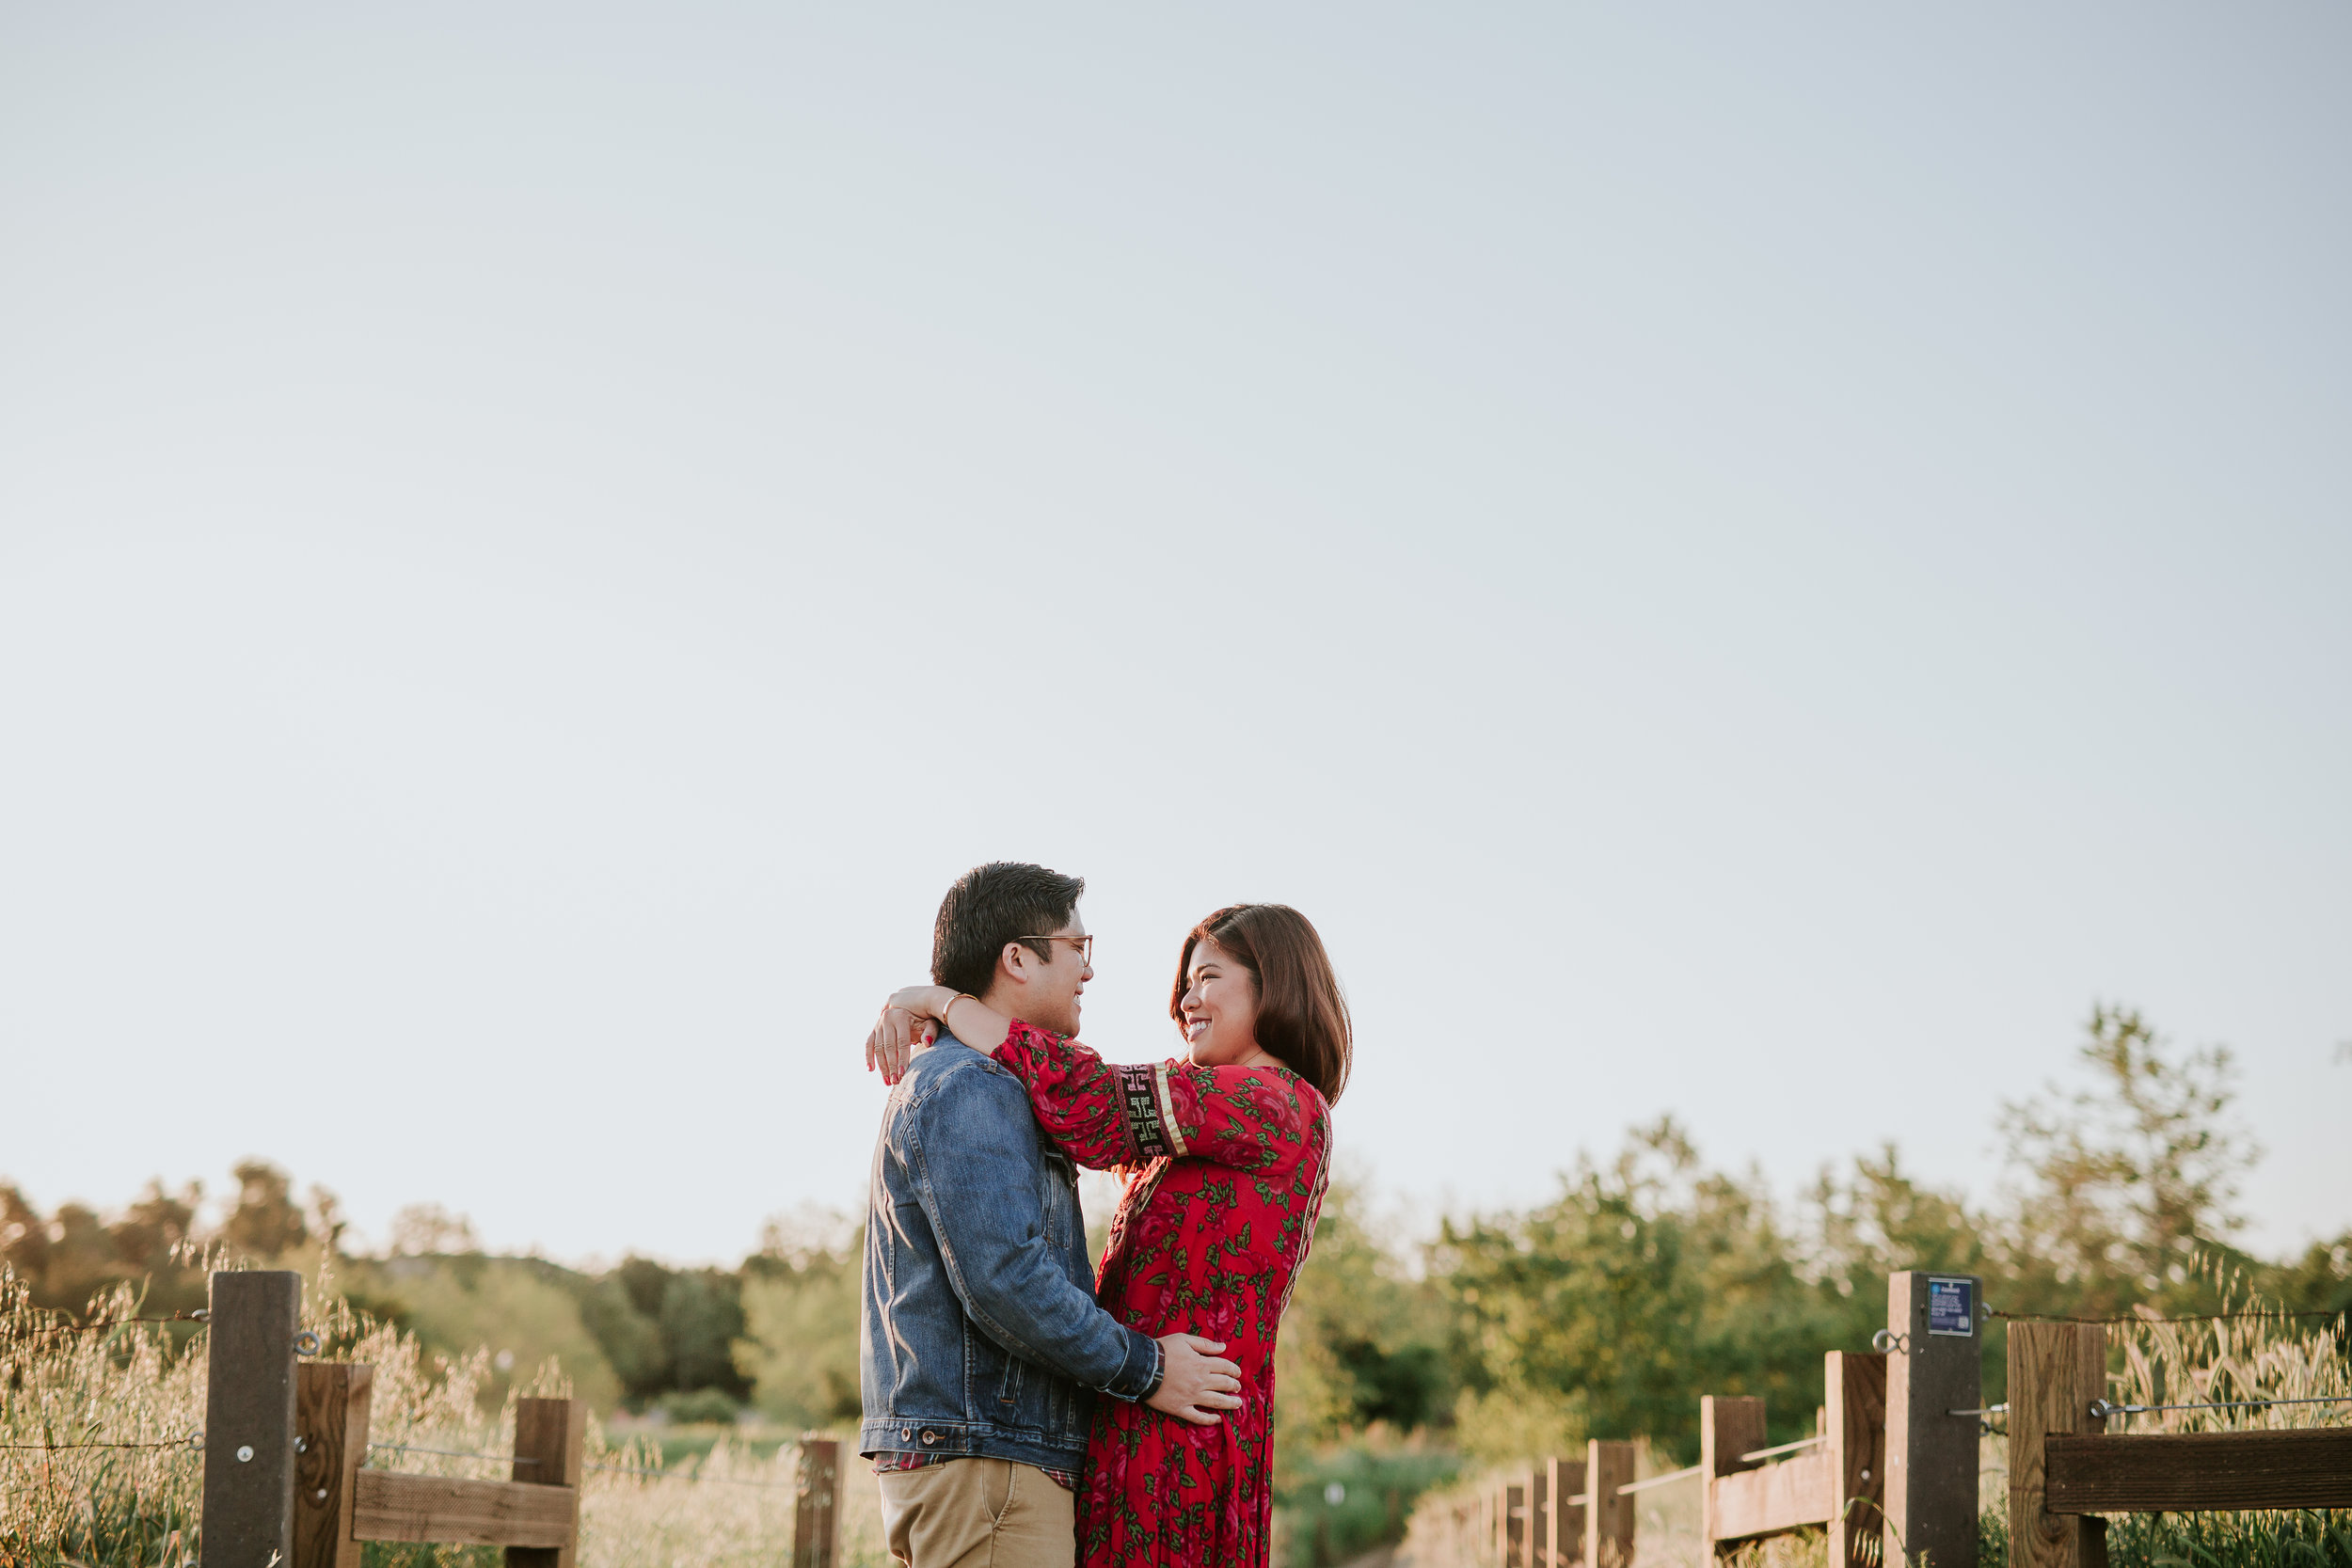 Vera.Ray.Quail.HIll.Trail.Irvine.Engagement.Session-2.jpg